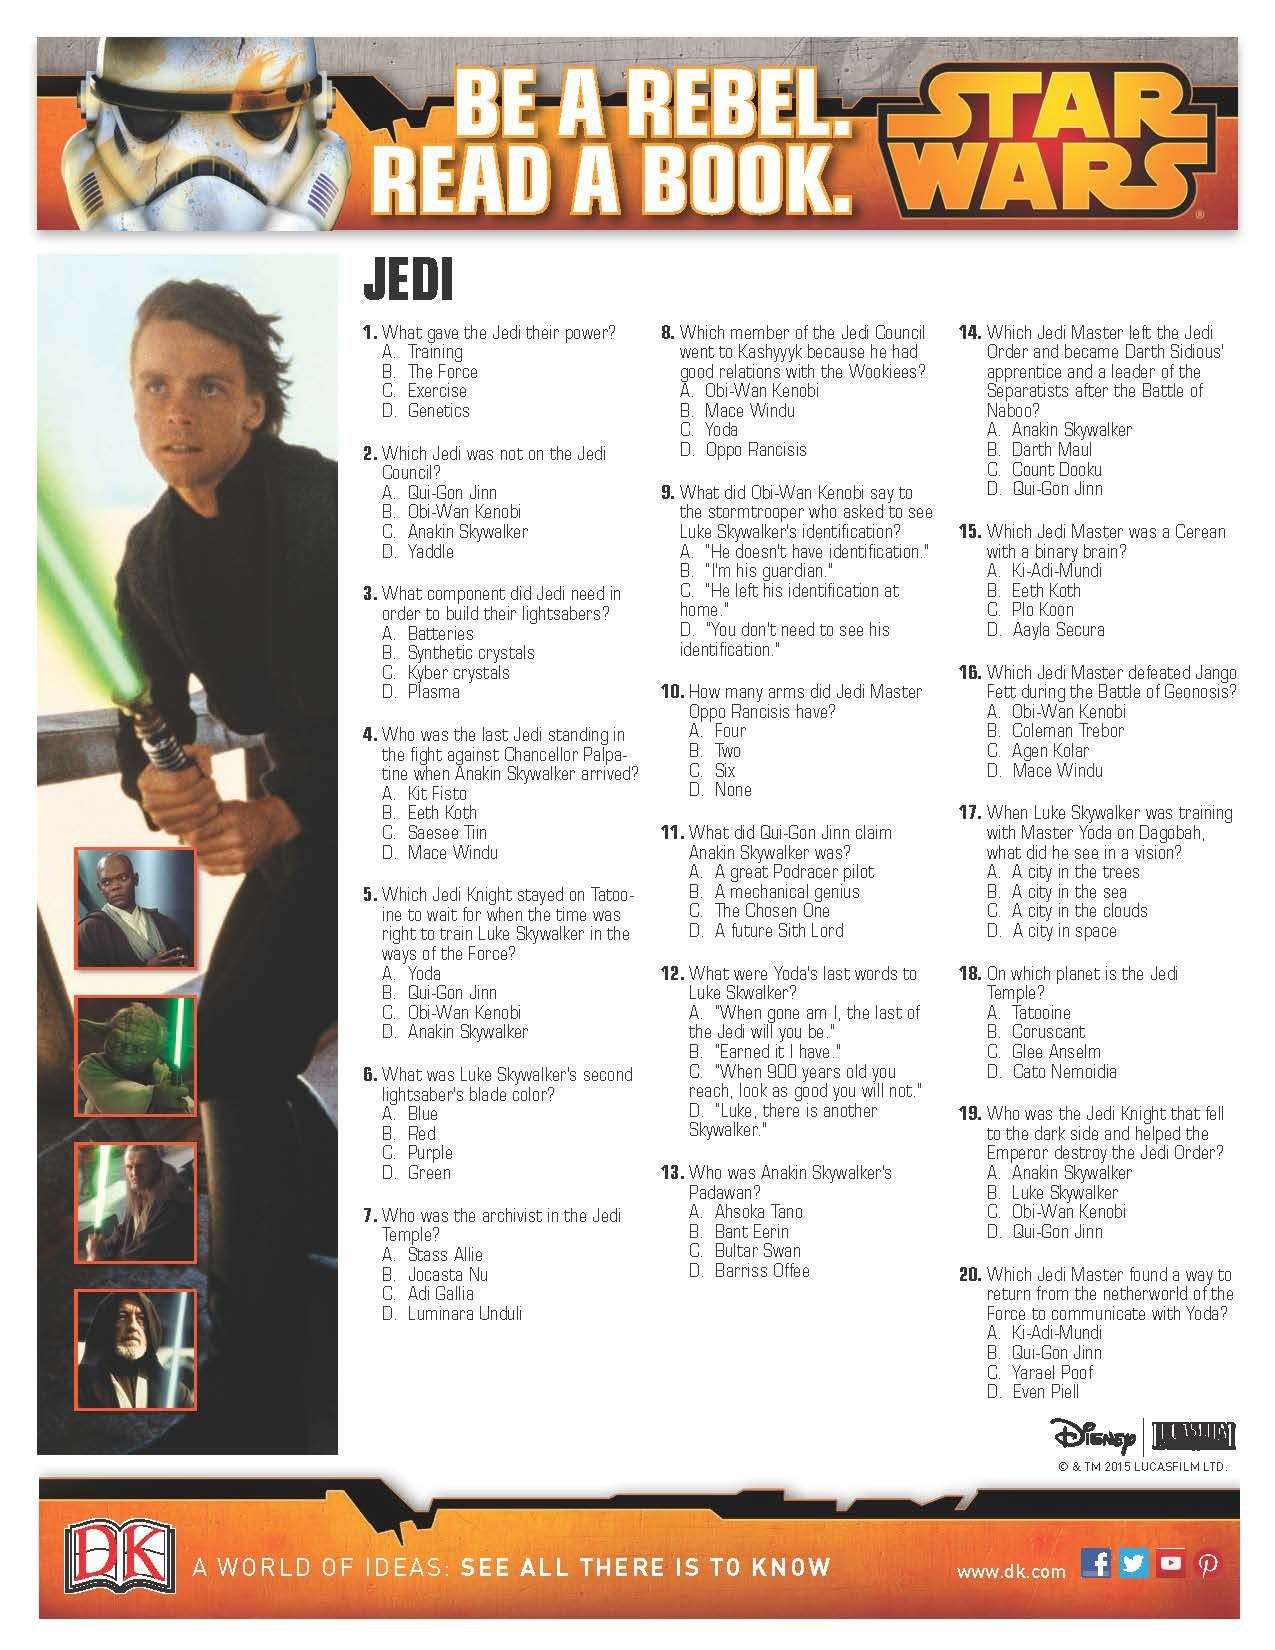 photograph about Star Wars Trivia Questions and Answers Printable titled Could possibly Star Wars Trivia Queries: Jedi Star Wars Camp Star